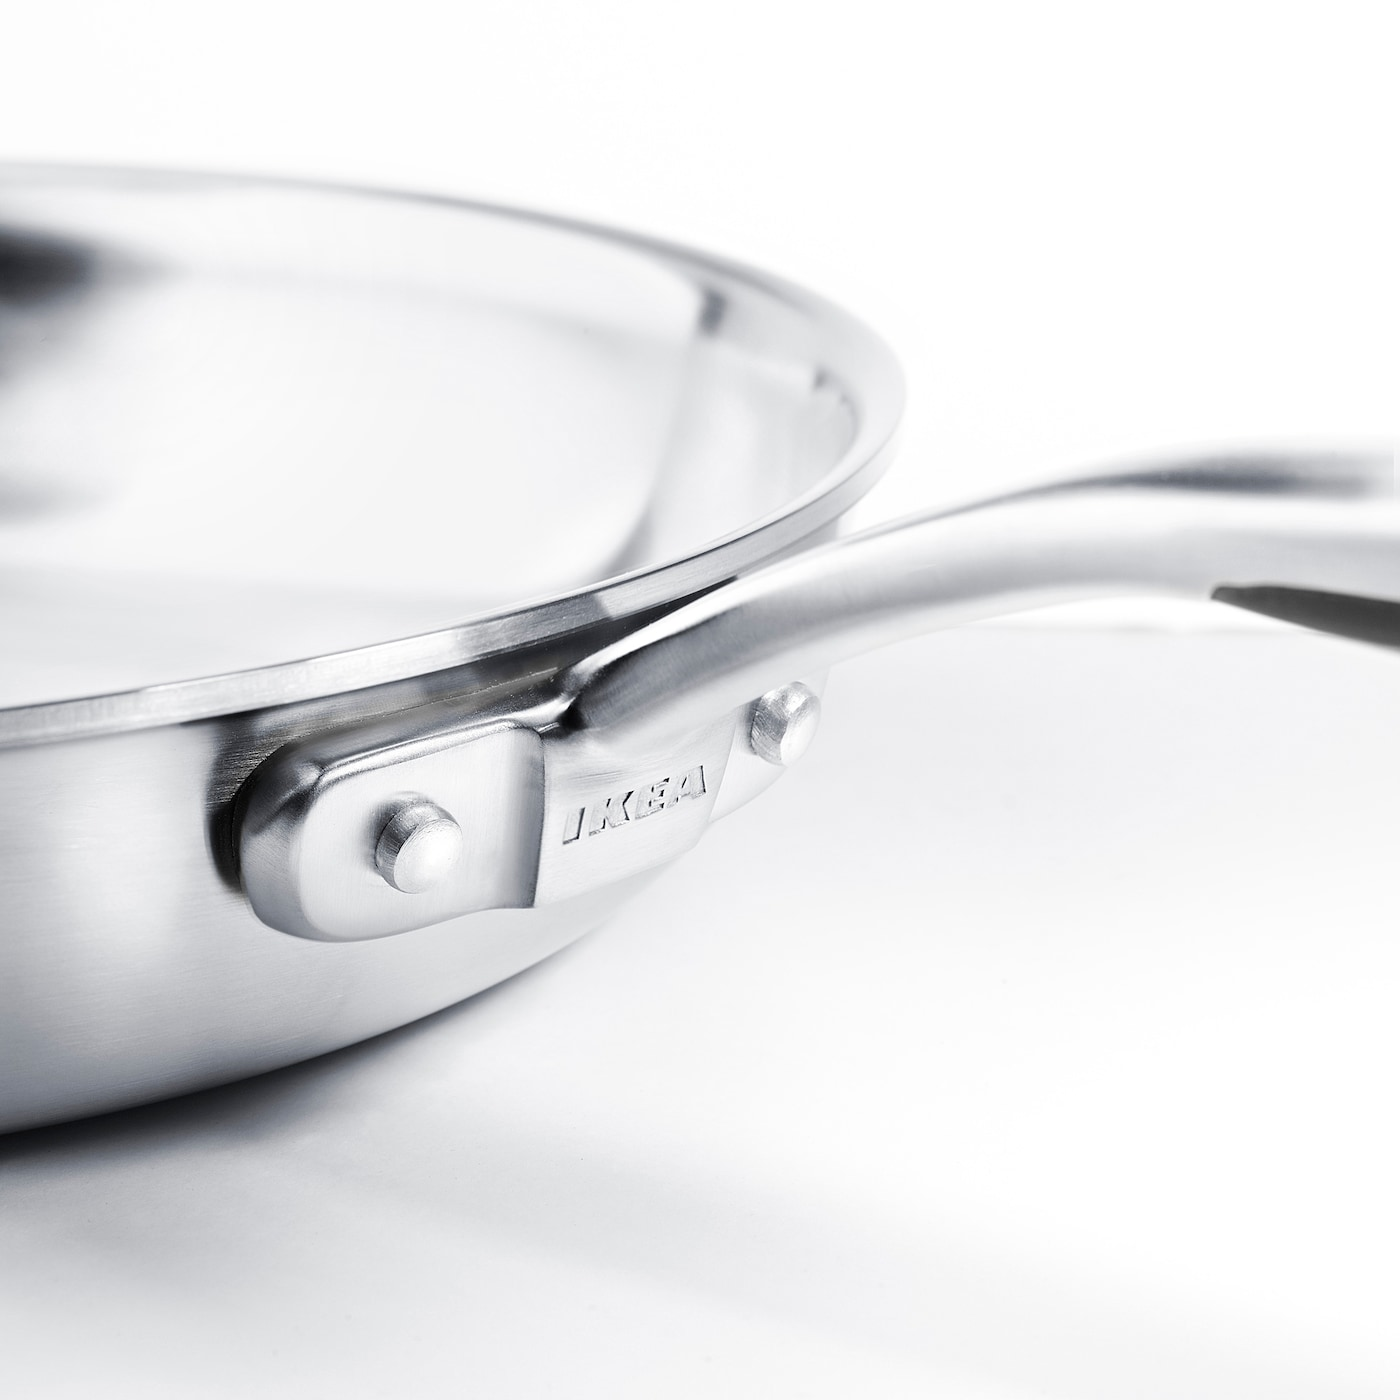 SENSUELL Frying pan, stainless steel/gray, 11 ""